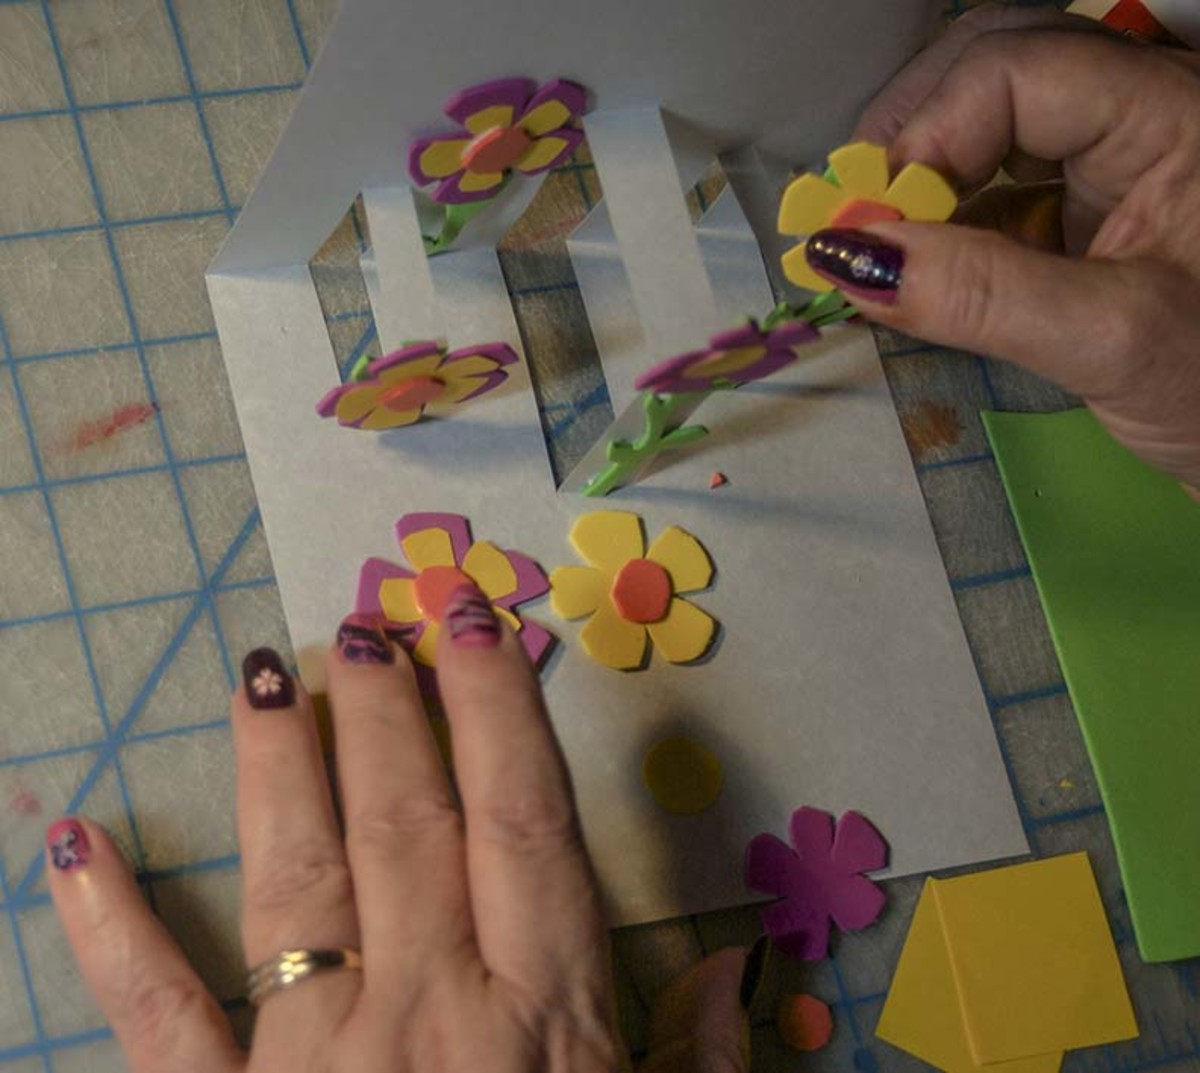 Glue stems and flowers onto slots.